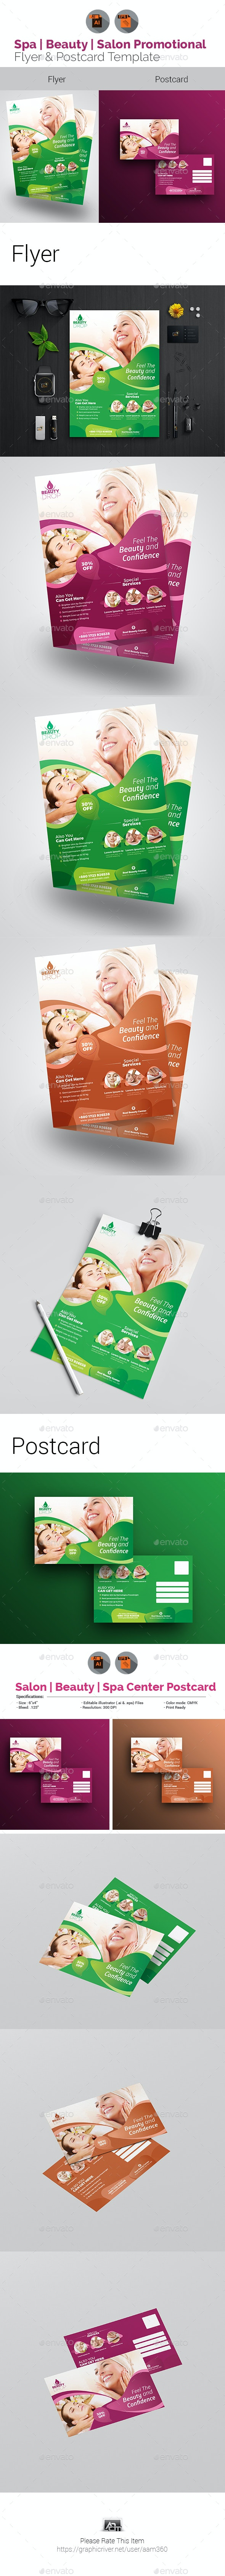 Beauty Care Flyer with Postcard Bundle - Corporate Flyers